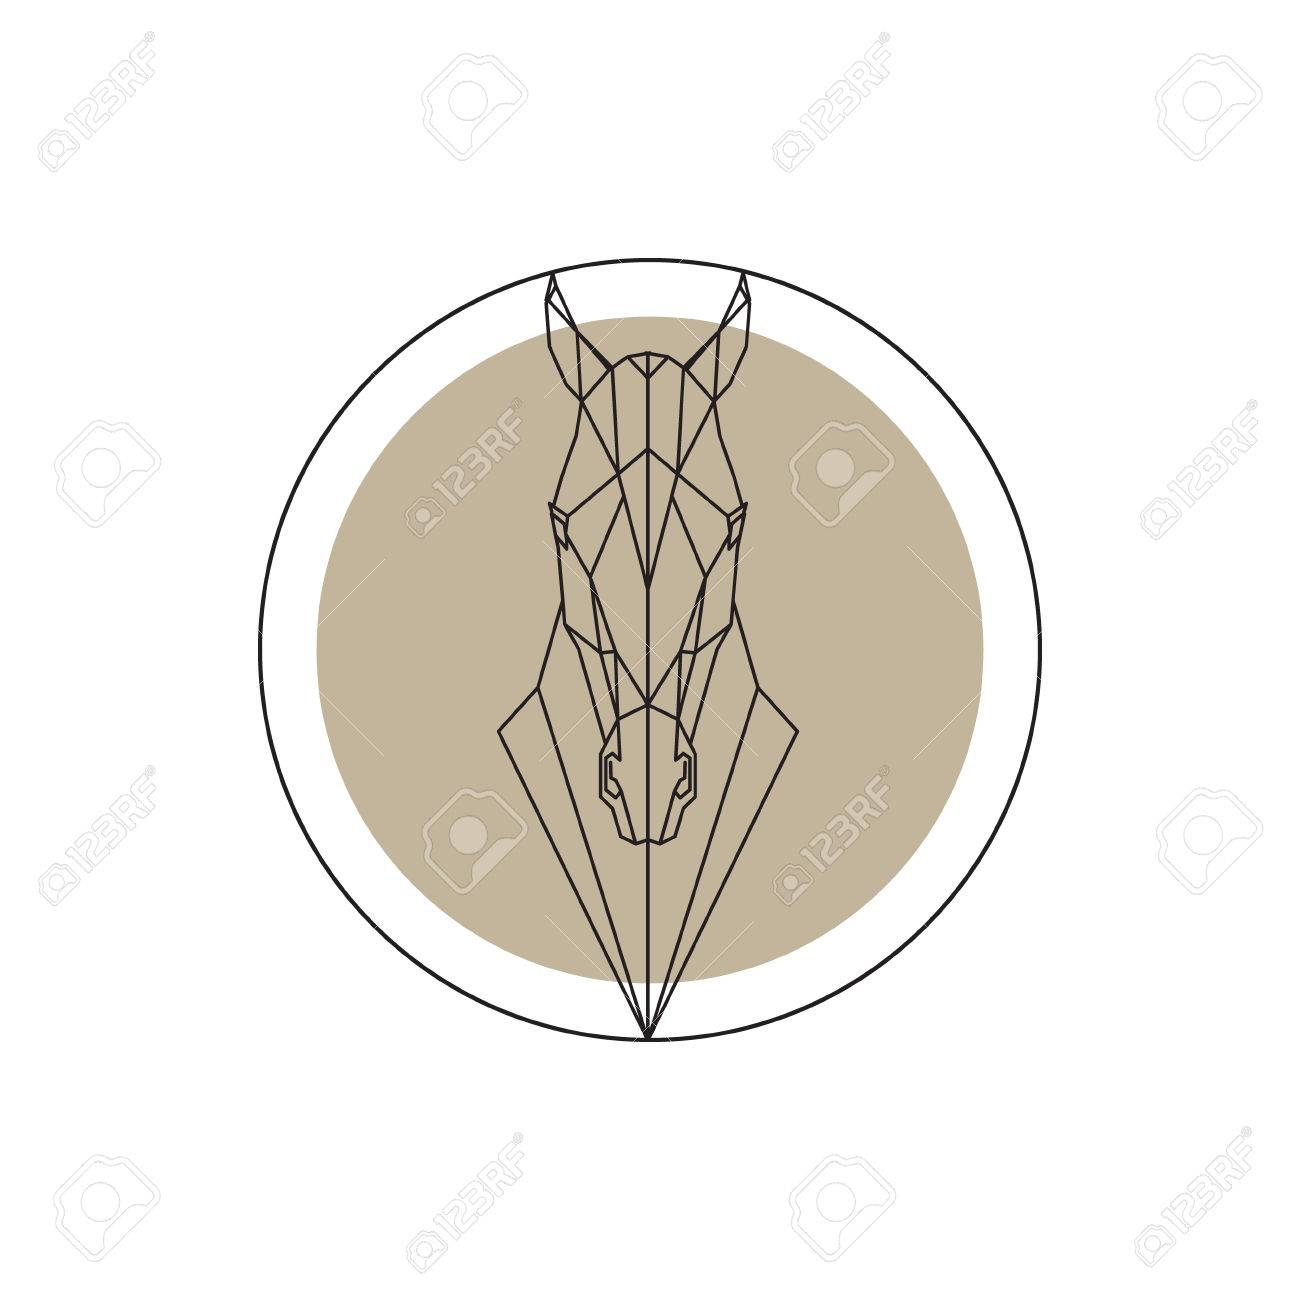 Horse Head Geometric Silhouette Isolated Design Element Illustration Royalty Free Cliparts Vectors And Stock Illustration Image 63383166